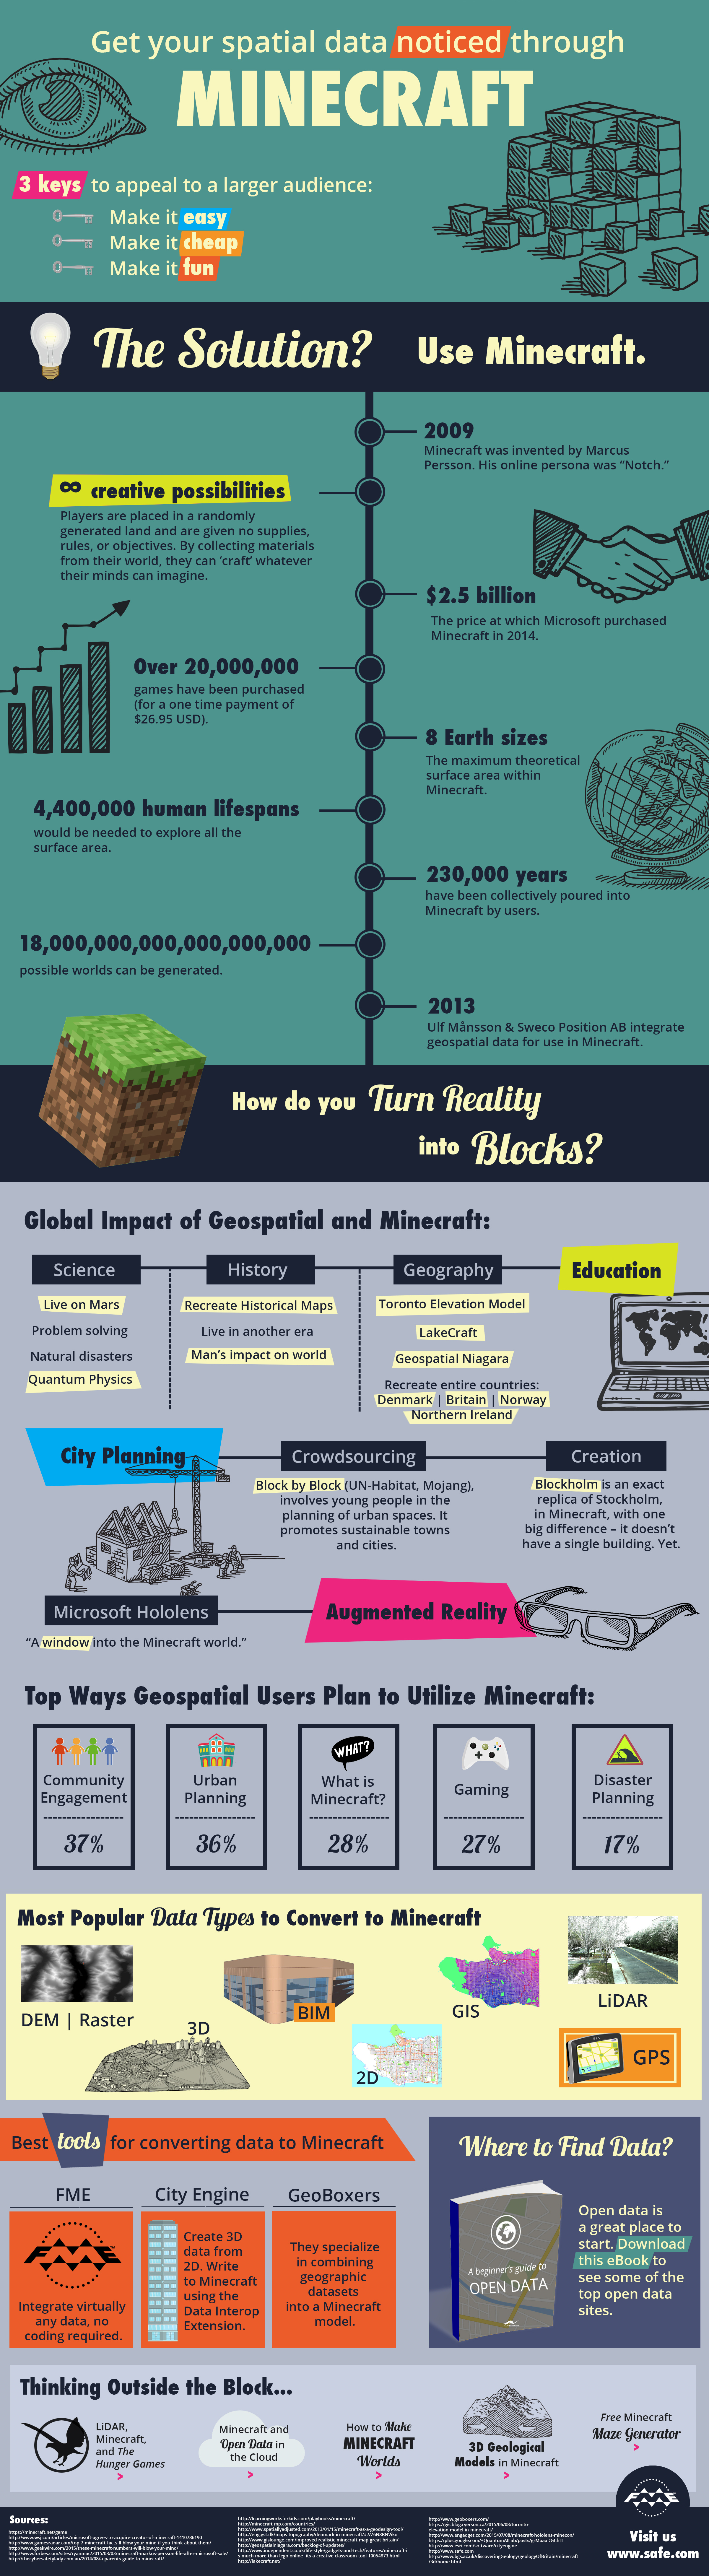 Minecraft and Geospatial: Get Your Data Noticed (Infographic)